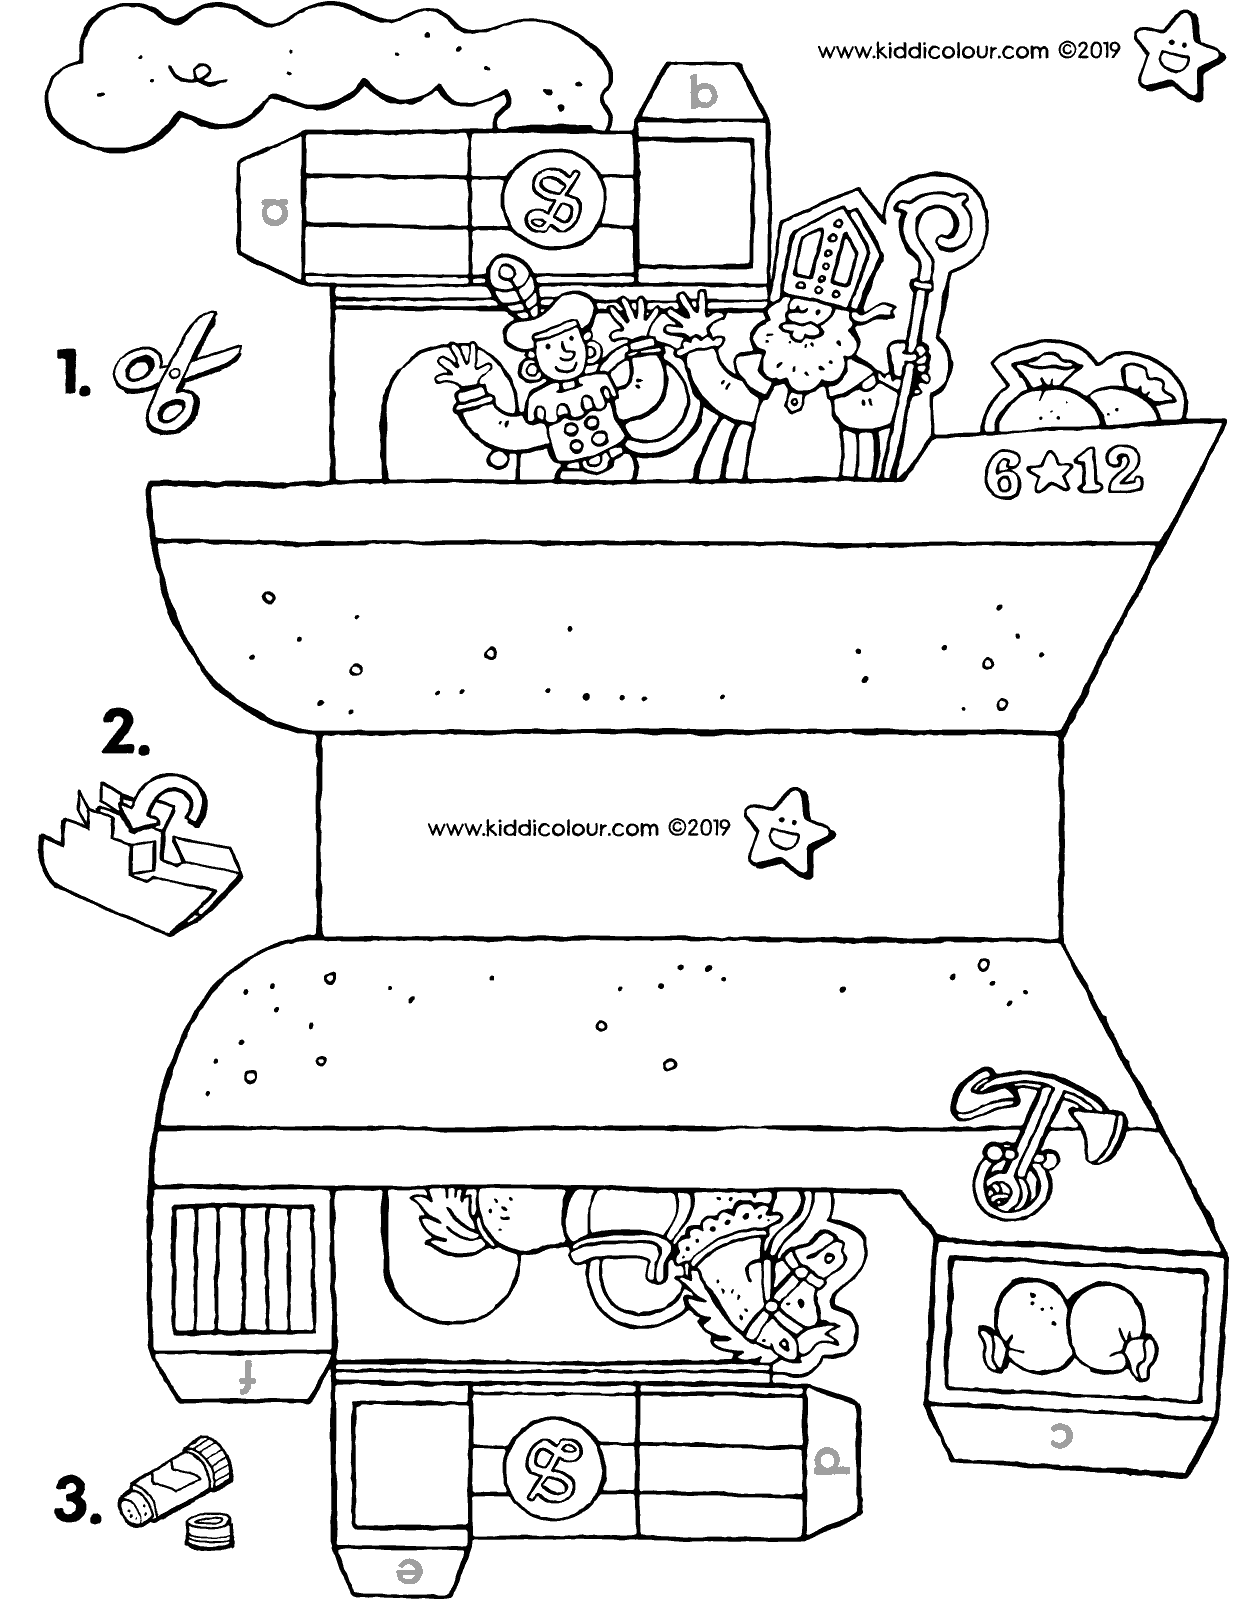 make your own Saint Nicholas steamship colouring page drawing picture 01V 2